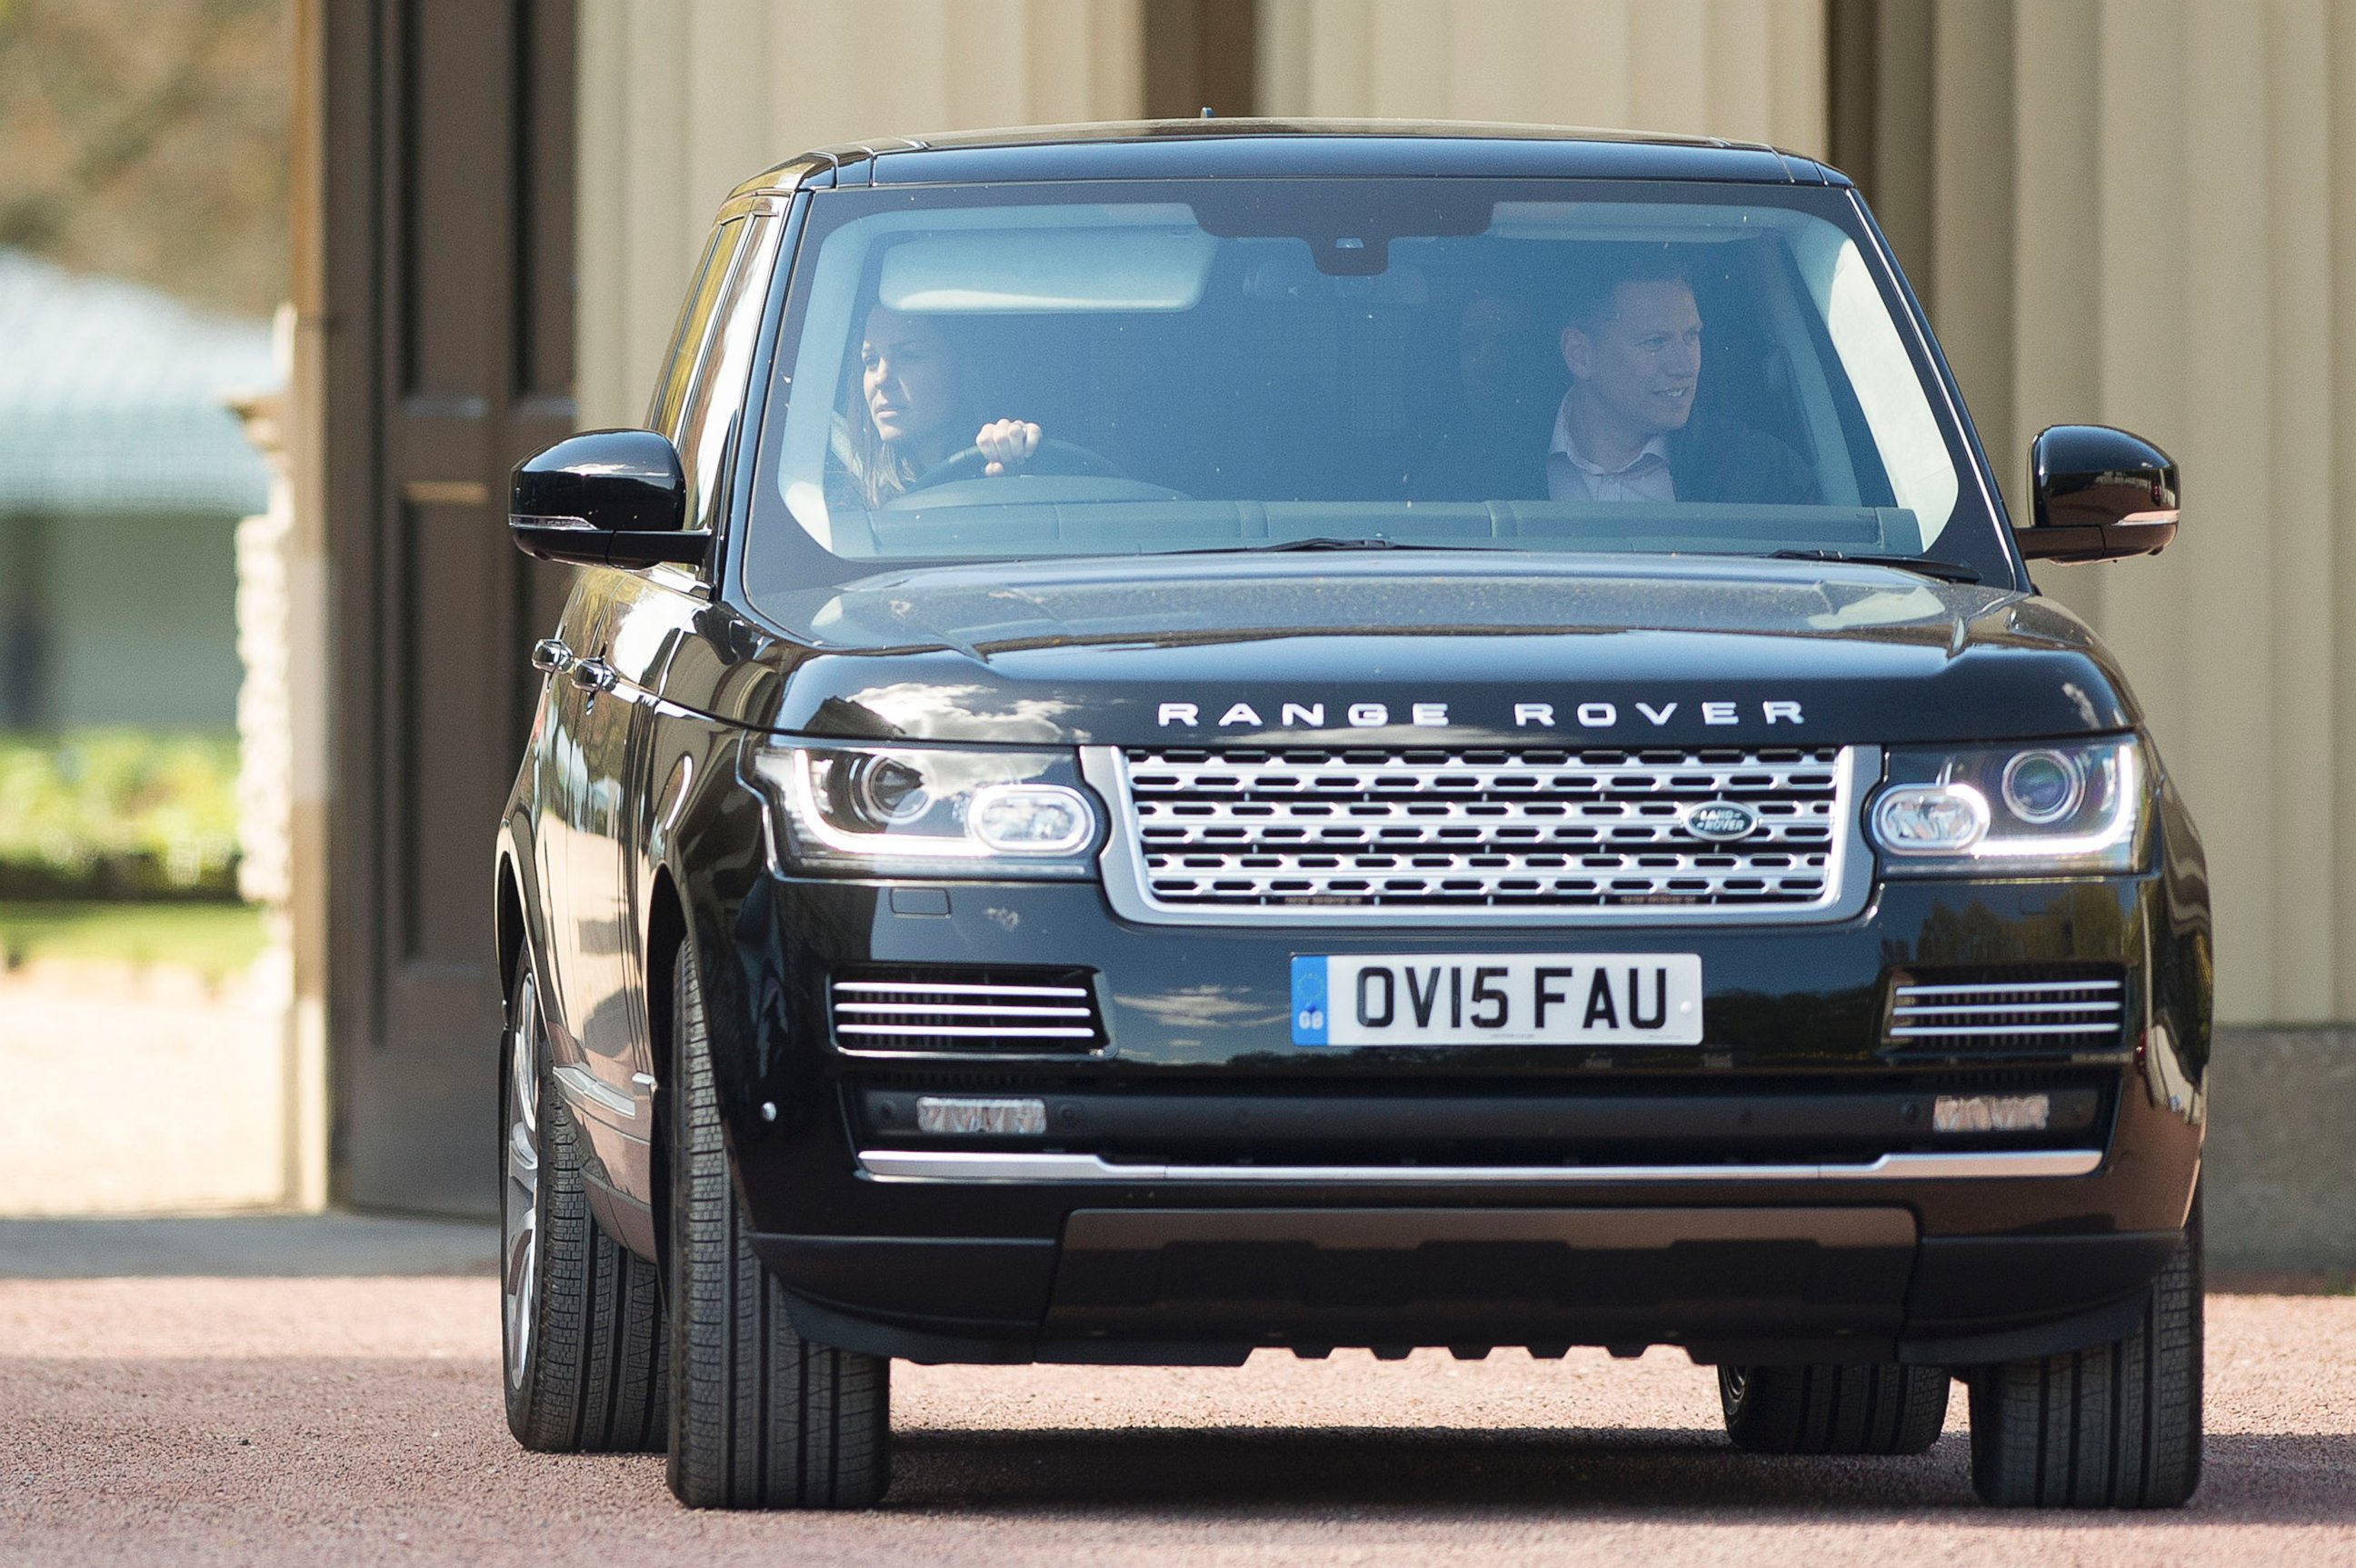 Kate Middleton Goes for a Drive